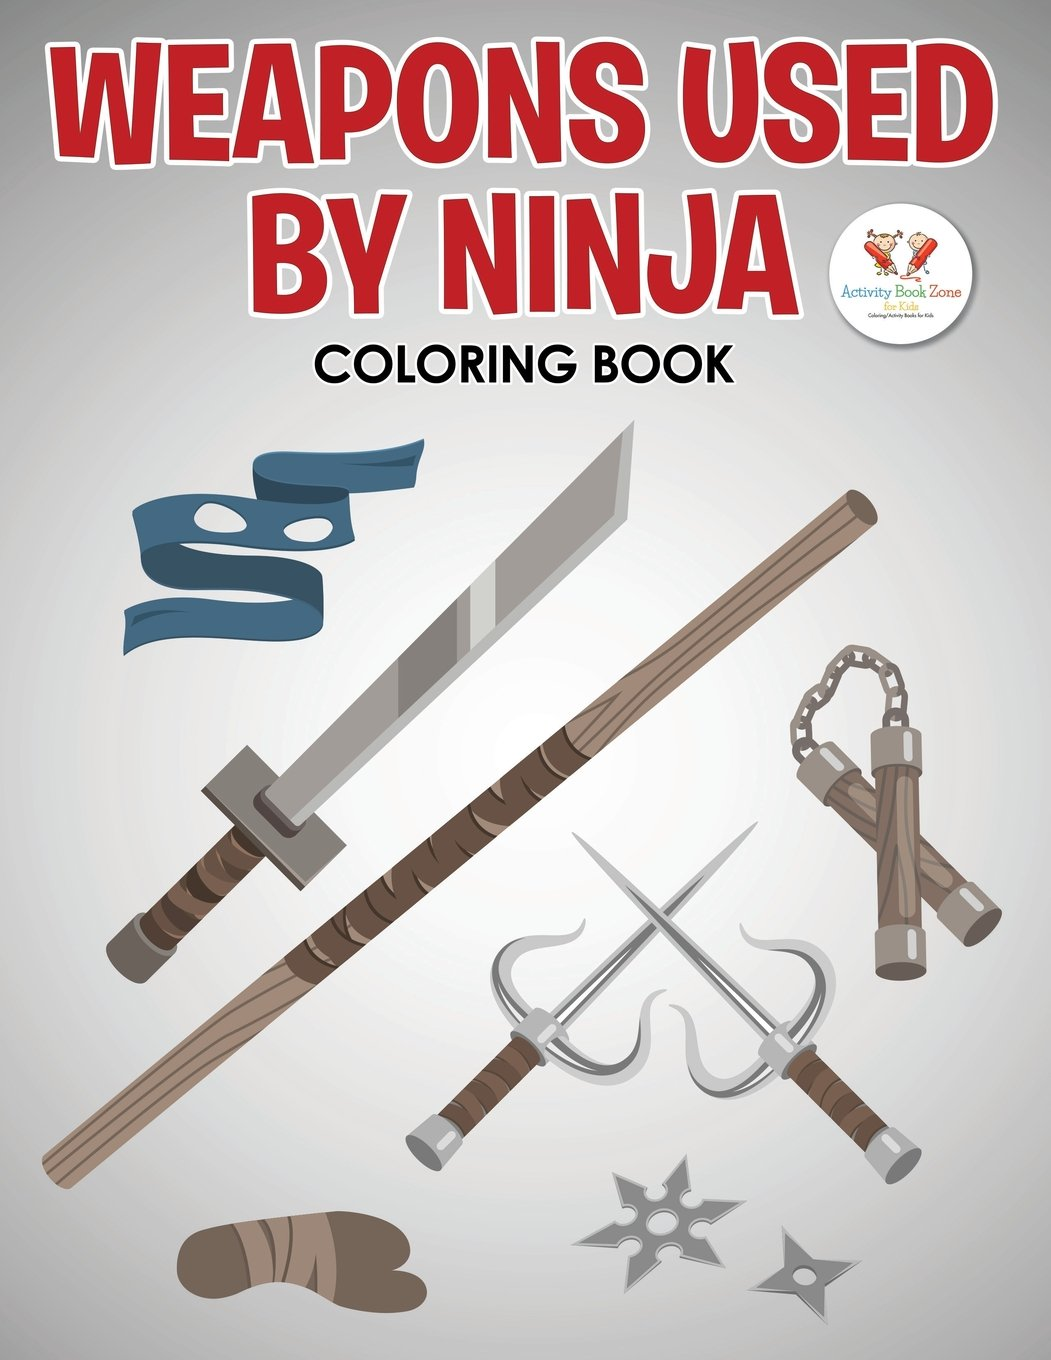 Weapons Used by Ninja Coloring Book: Amazon.es: Activity ...